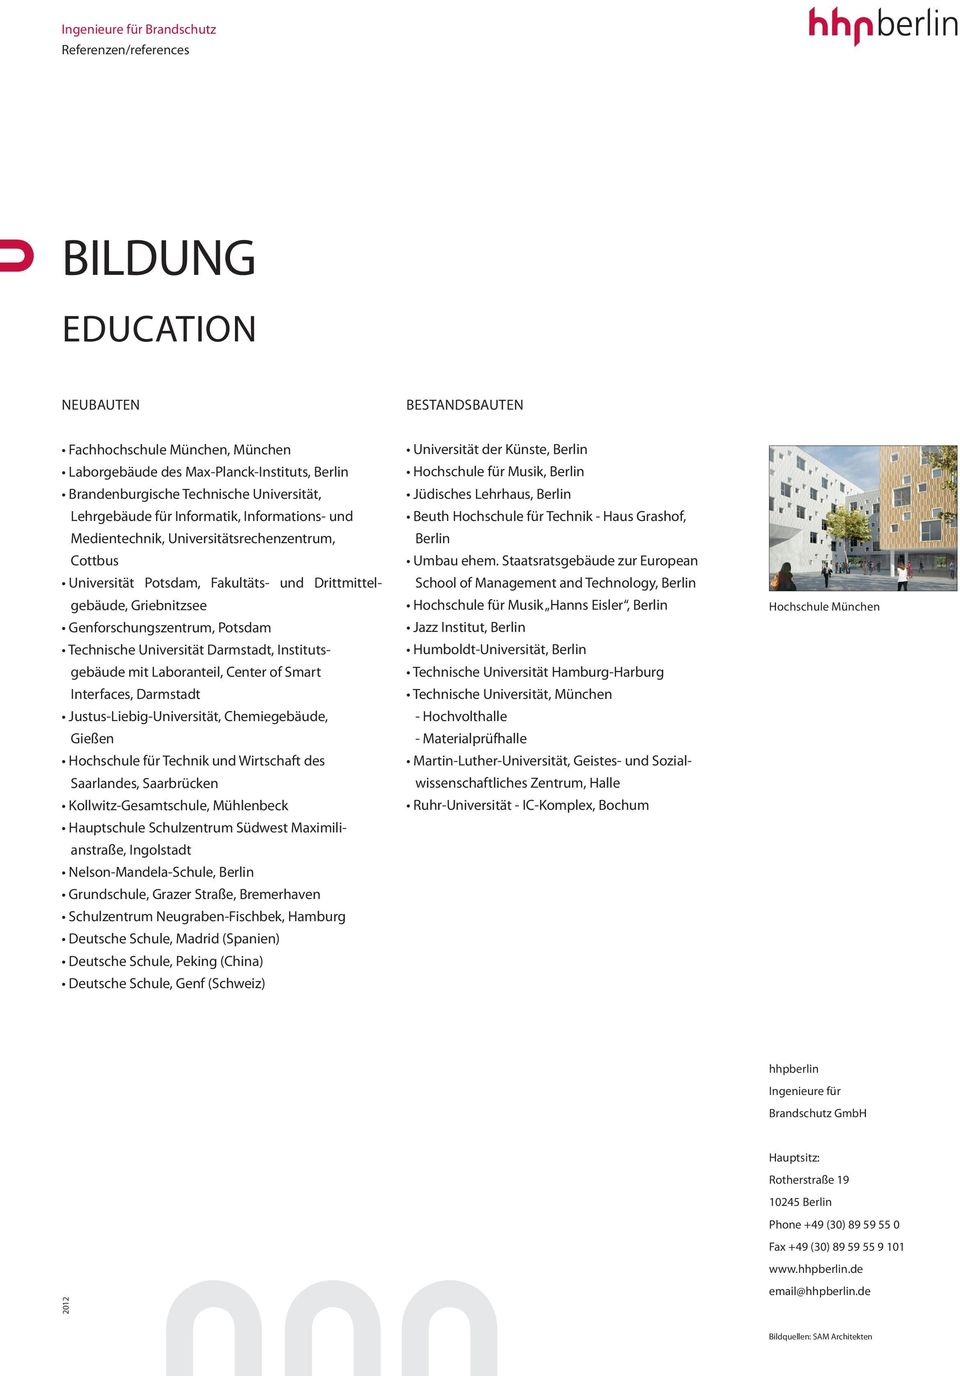 mit Laboranteil, Center of Smart Interfaces, Darmstadt Justus-Liebig-Universität, Chemiegebäude, Gießen Hochschule für Technik und Wirtschaft des Saarlandes, Saarbrücken Kollwitz-Gesamtschule,